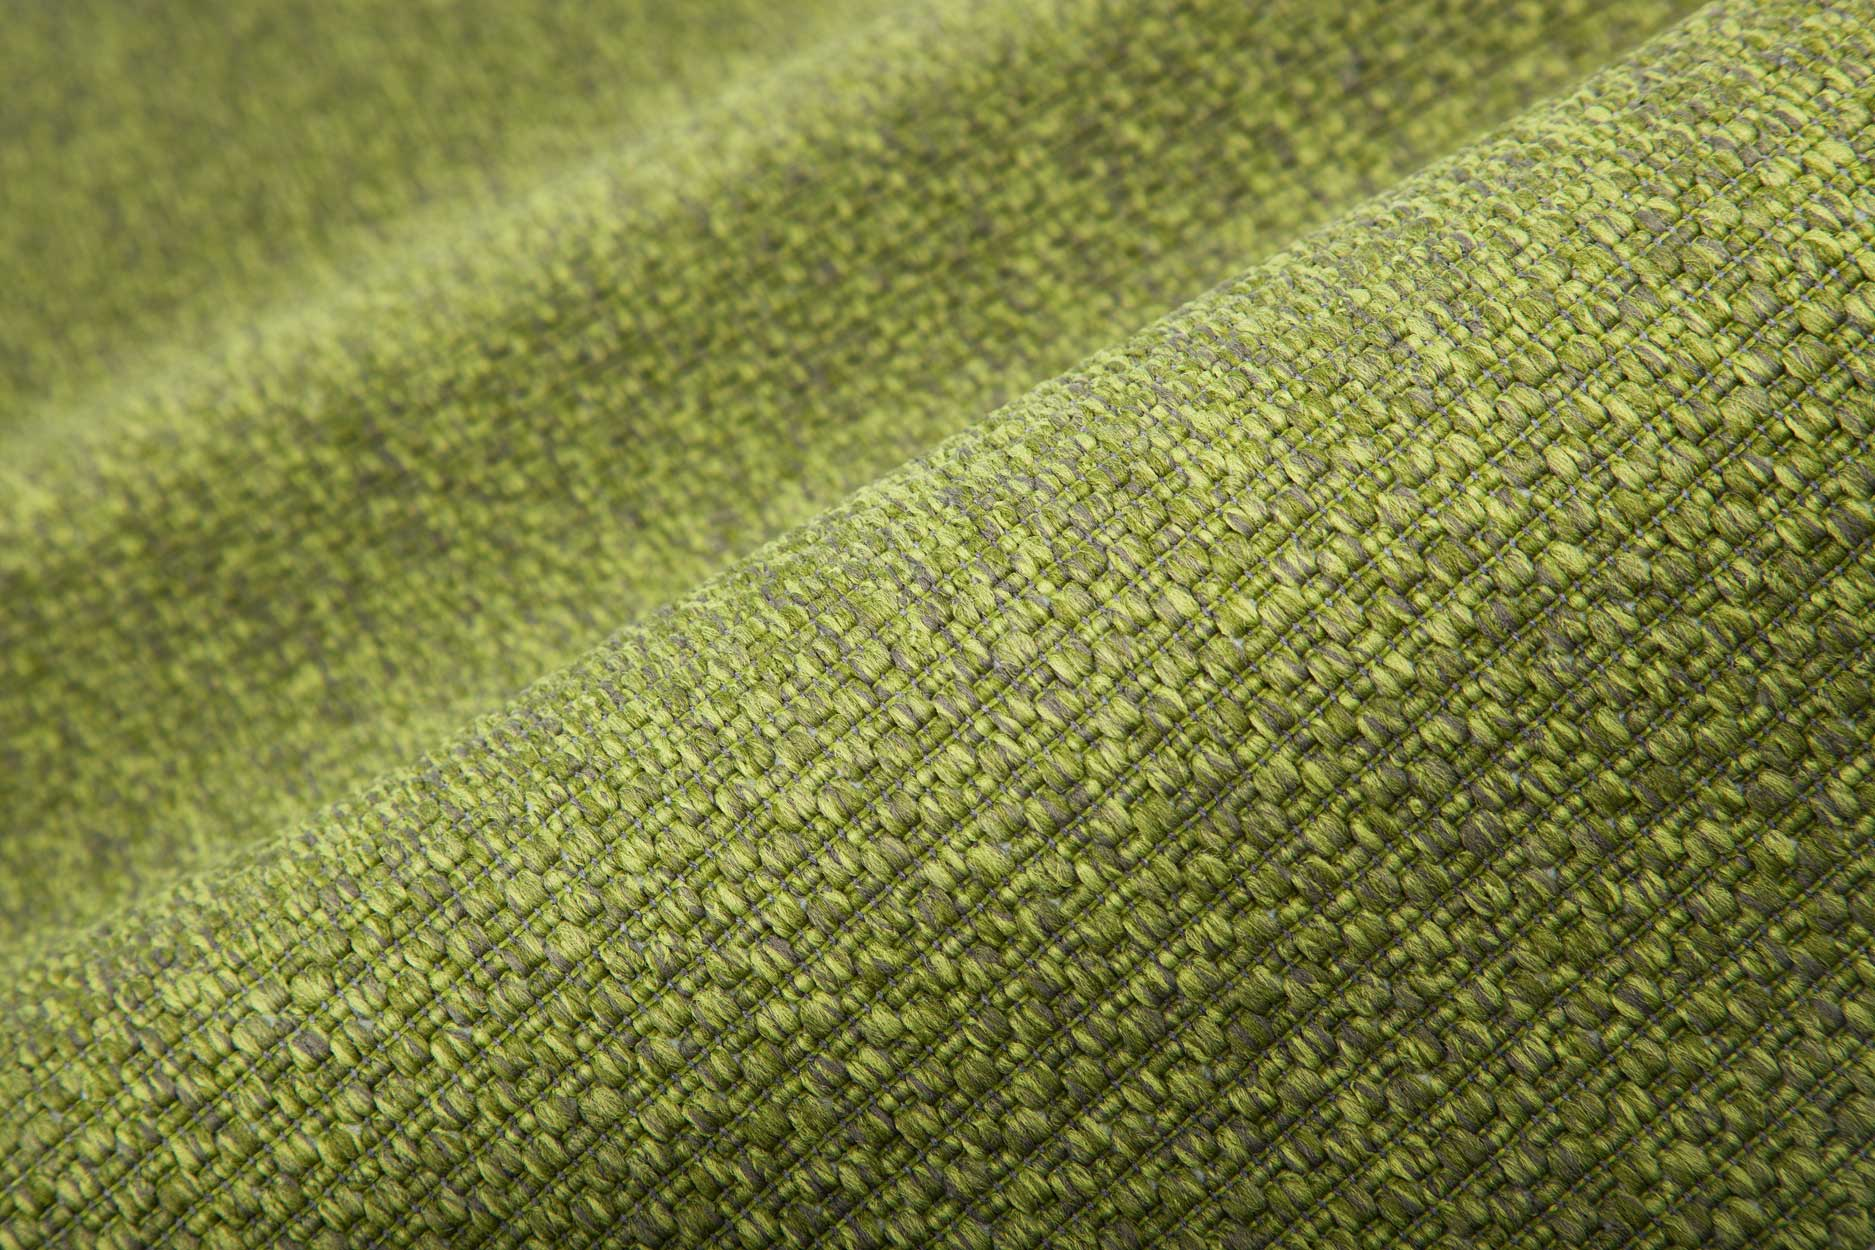 Dutch company MID Carpets makes Econyl carpets, which are made form recycled nylon, which can itself